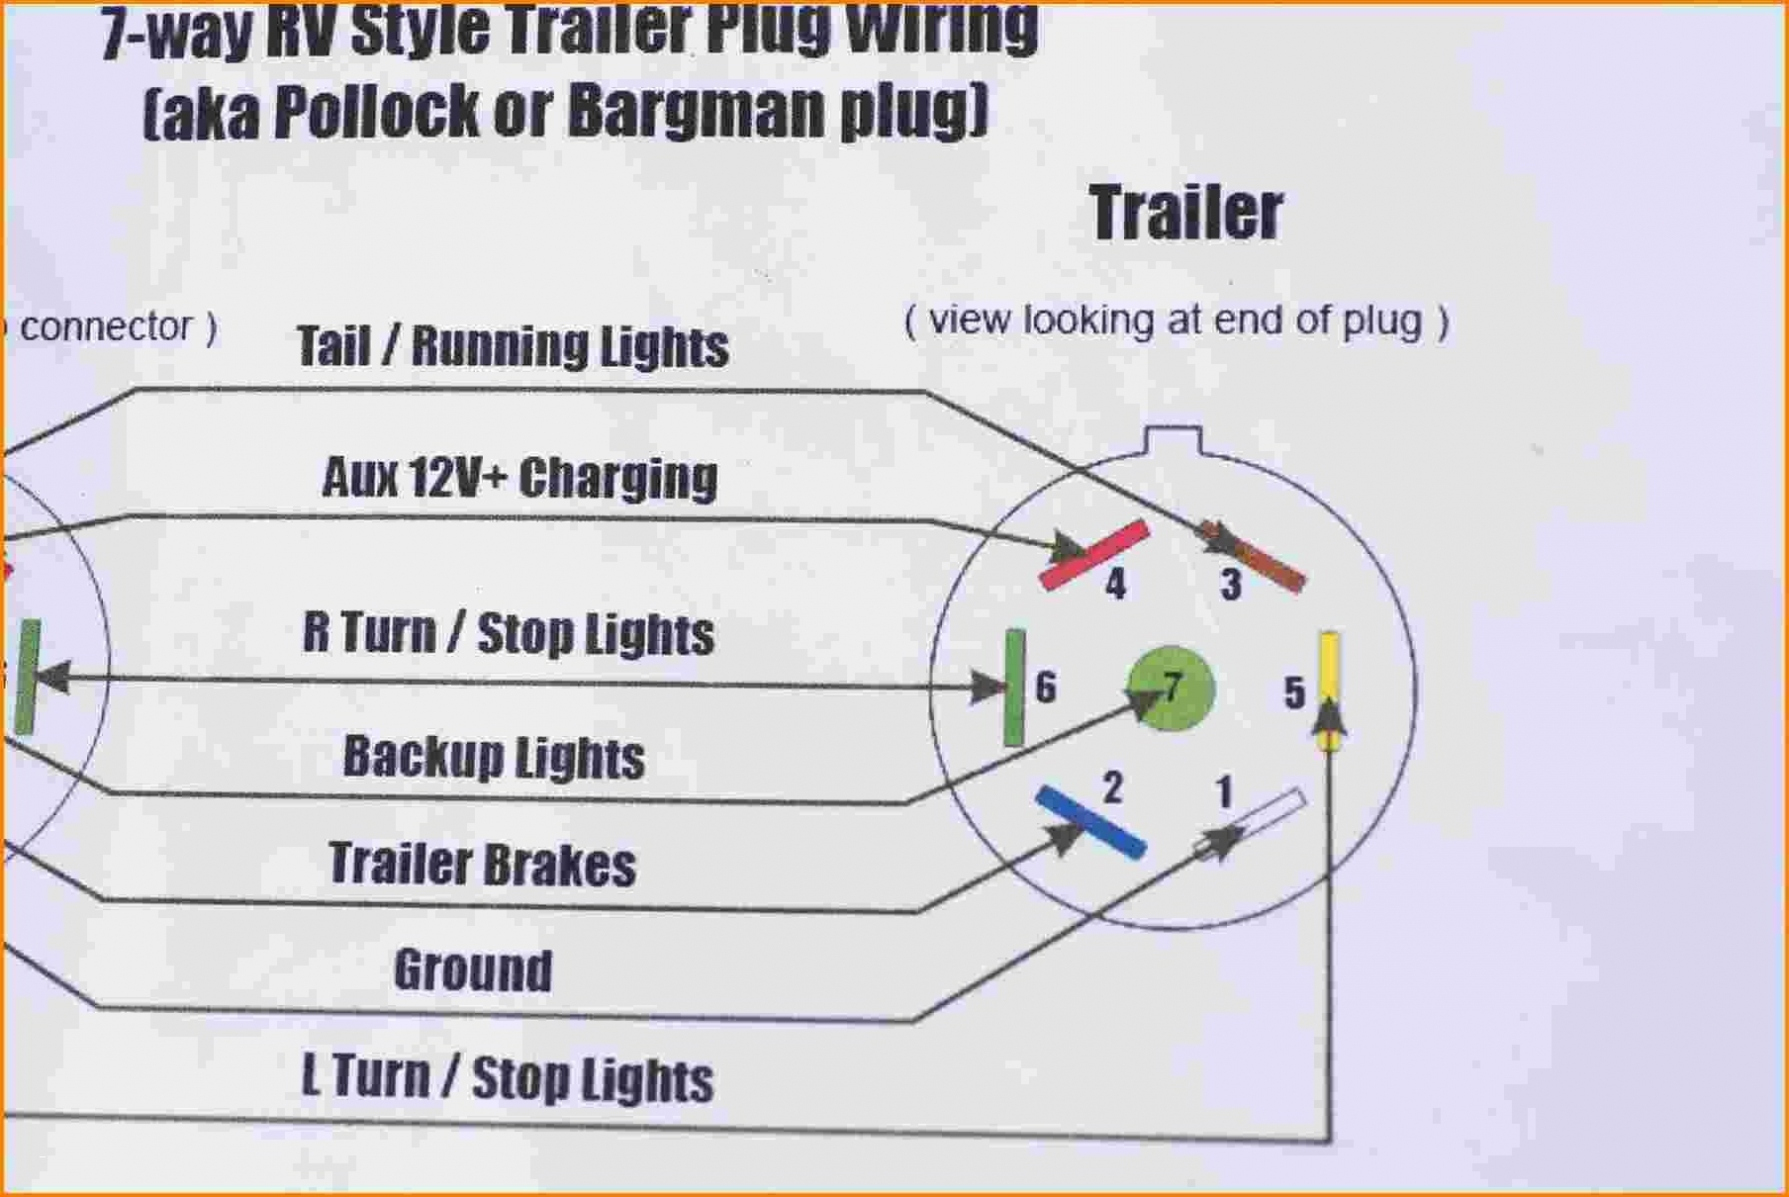 6 Round Trailer Plug Wiring Diagram | Manual E-Books - 7 Pin Round Trailer Plug Wiring Diagram